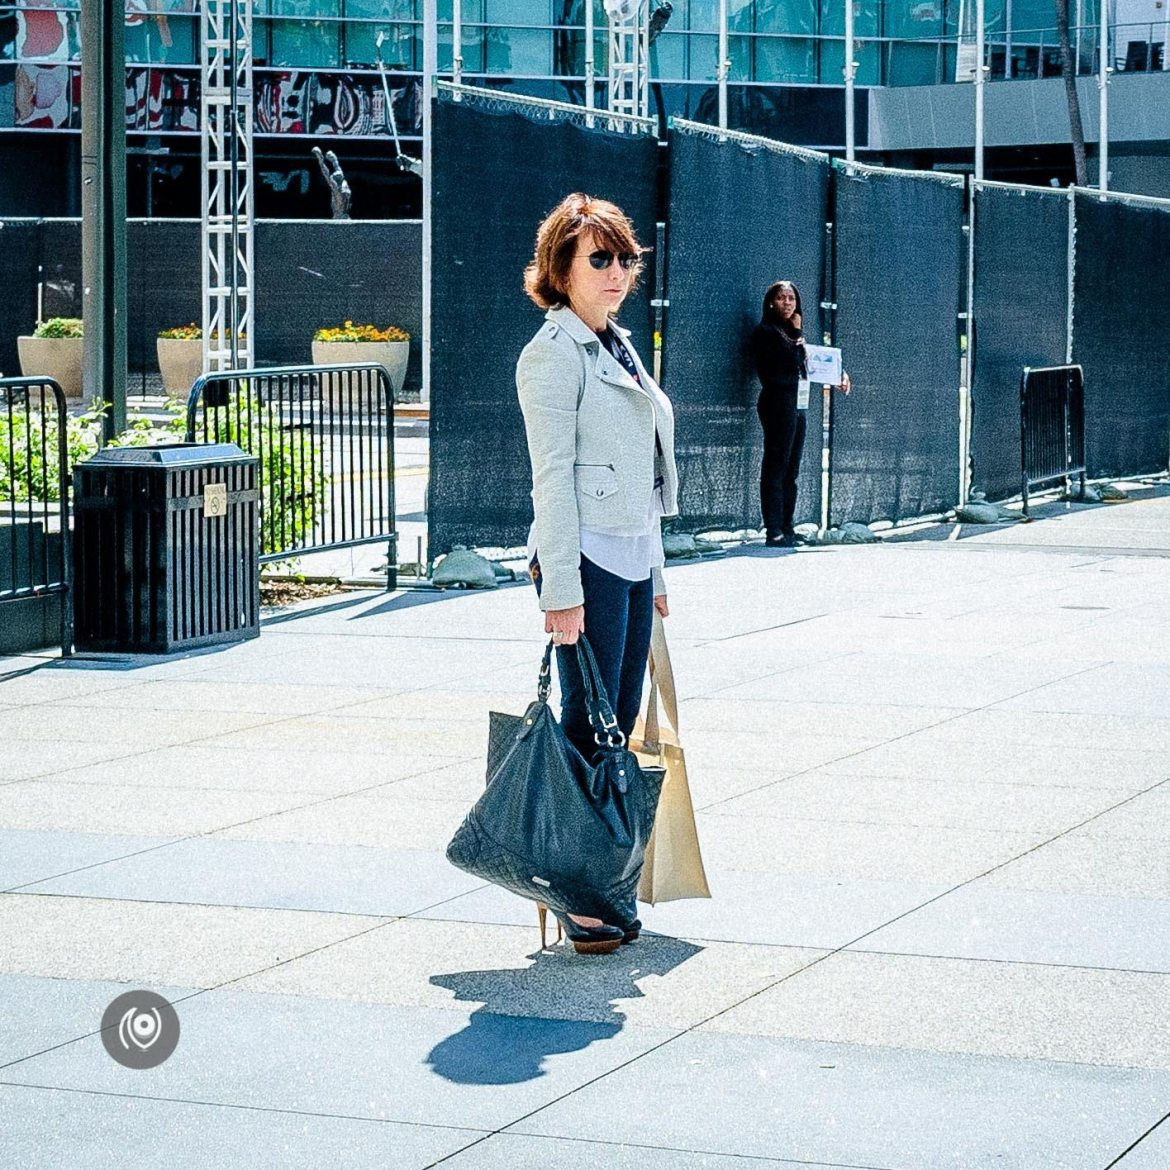 EyesForStreetStyle at Los Angeles #NAINAxADOBE #EyesForLA #AdobeMax15 Naina.co Luxury & Lifestyle, Photographer Storyteller, Blogger